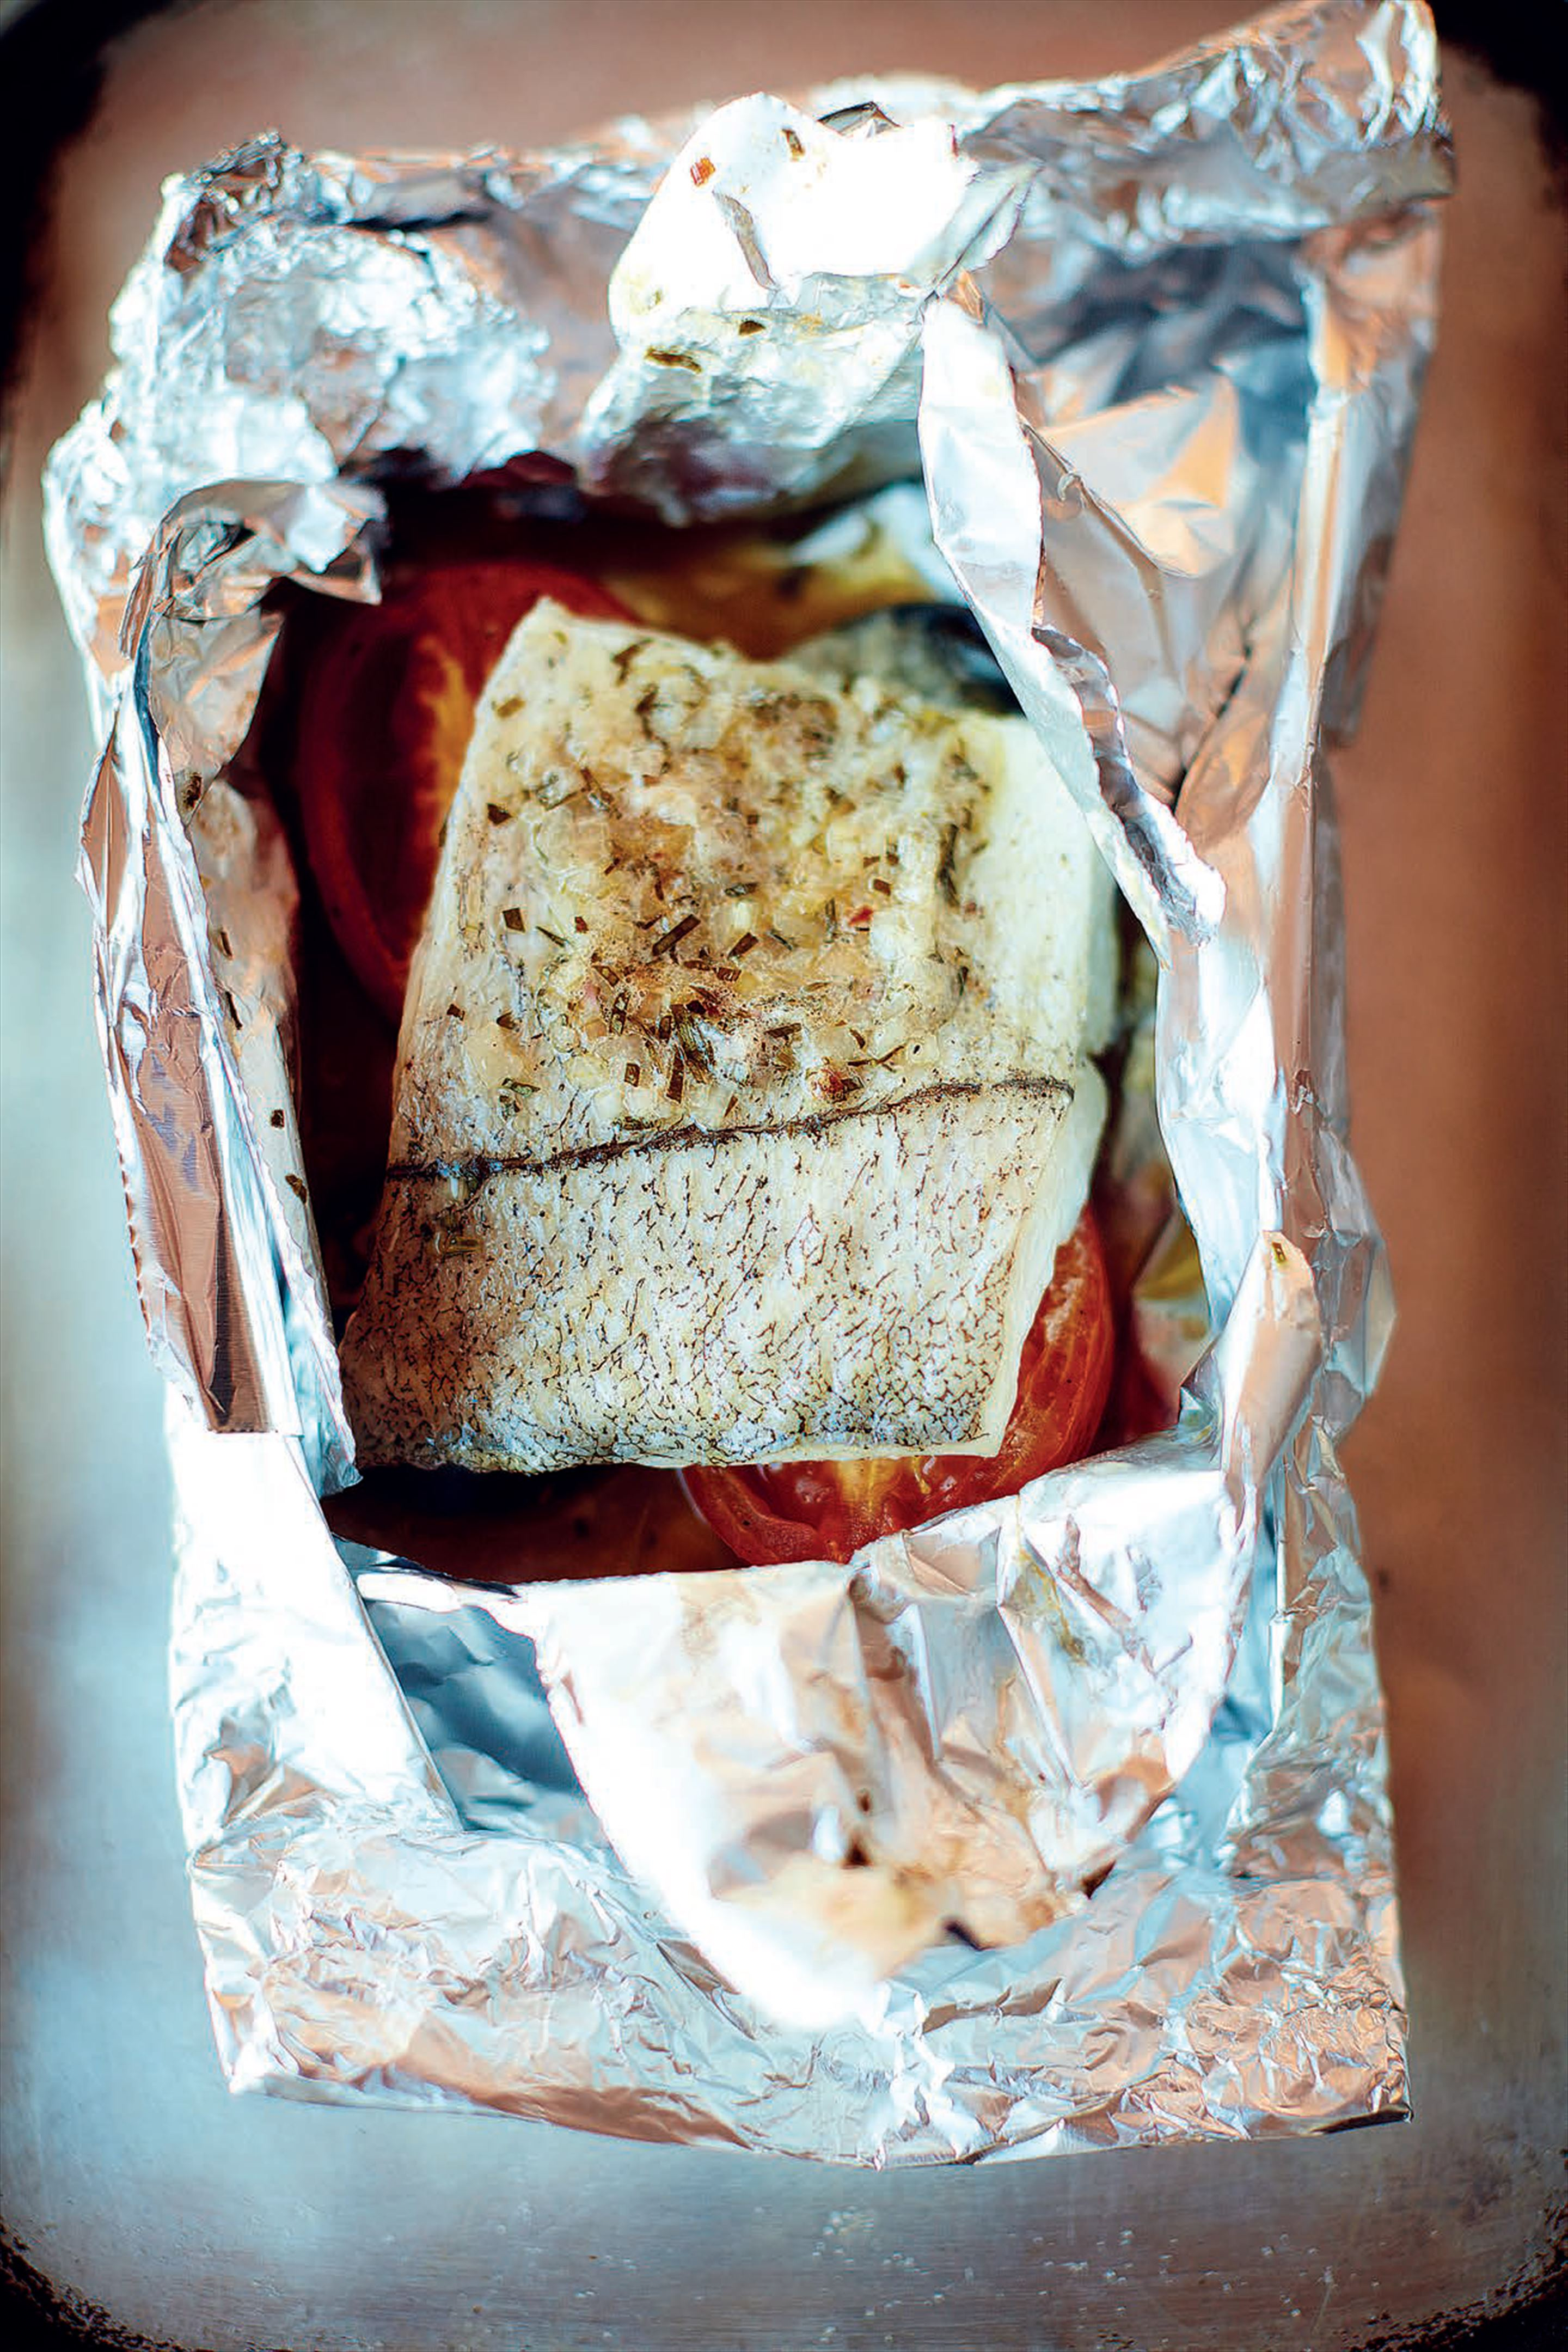 Haddock baked in a bag with béarnaise butter